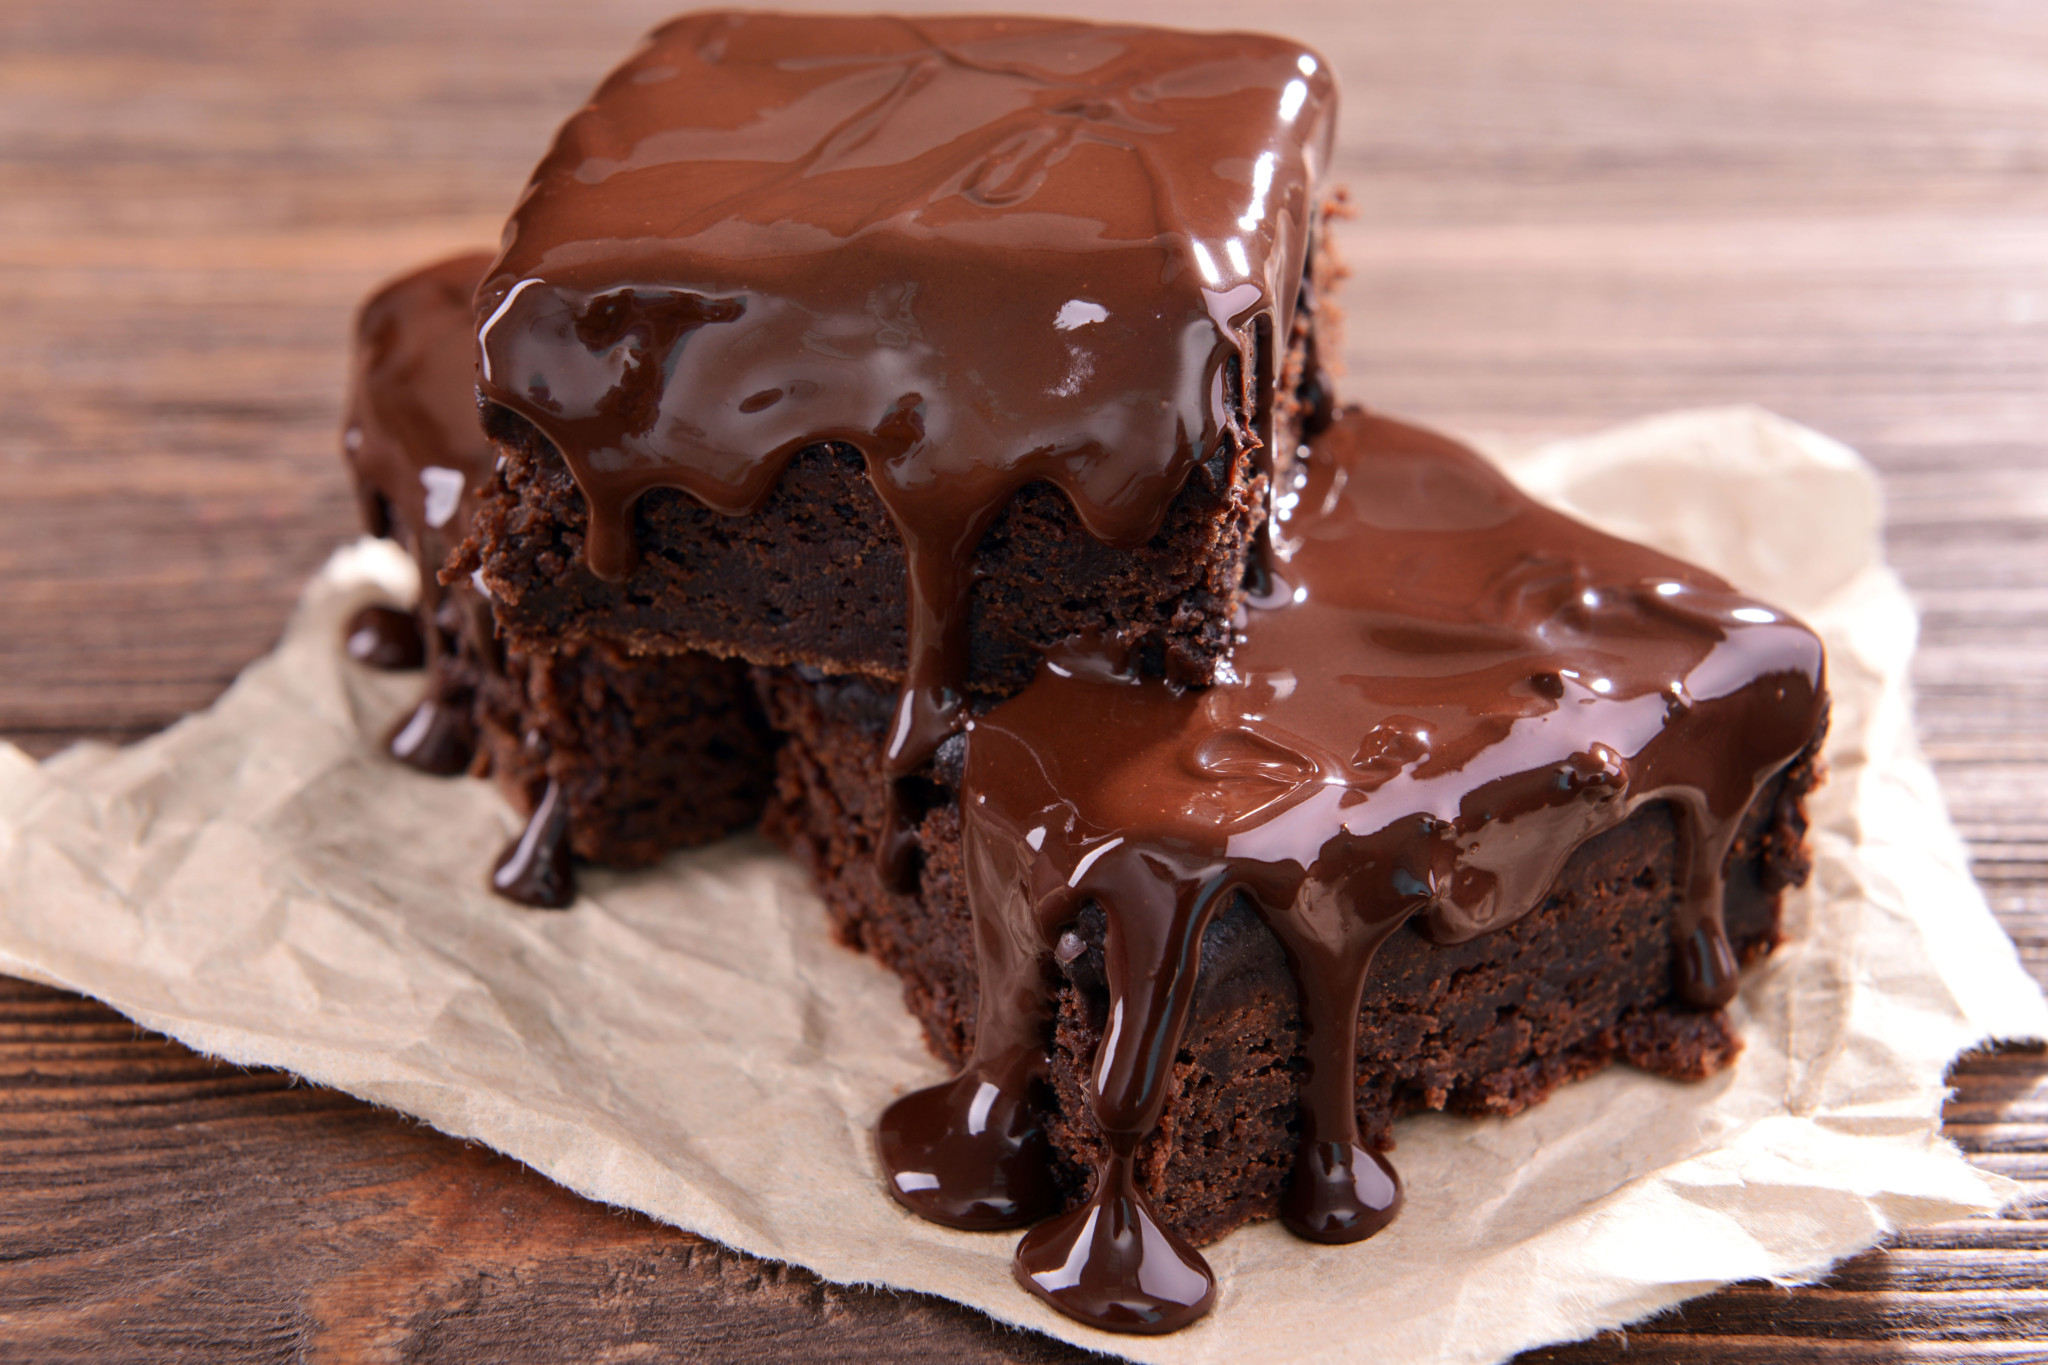 Delicious chocolate cakes on table close-up